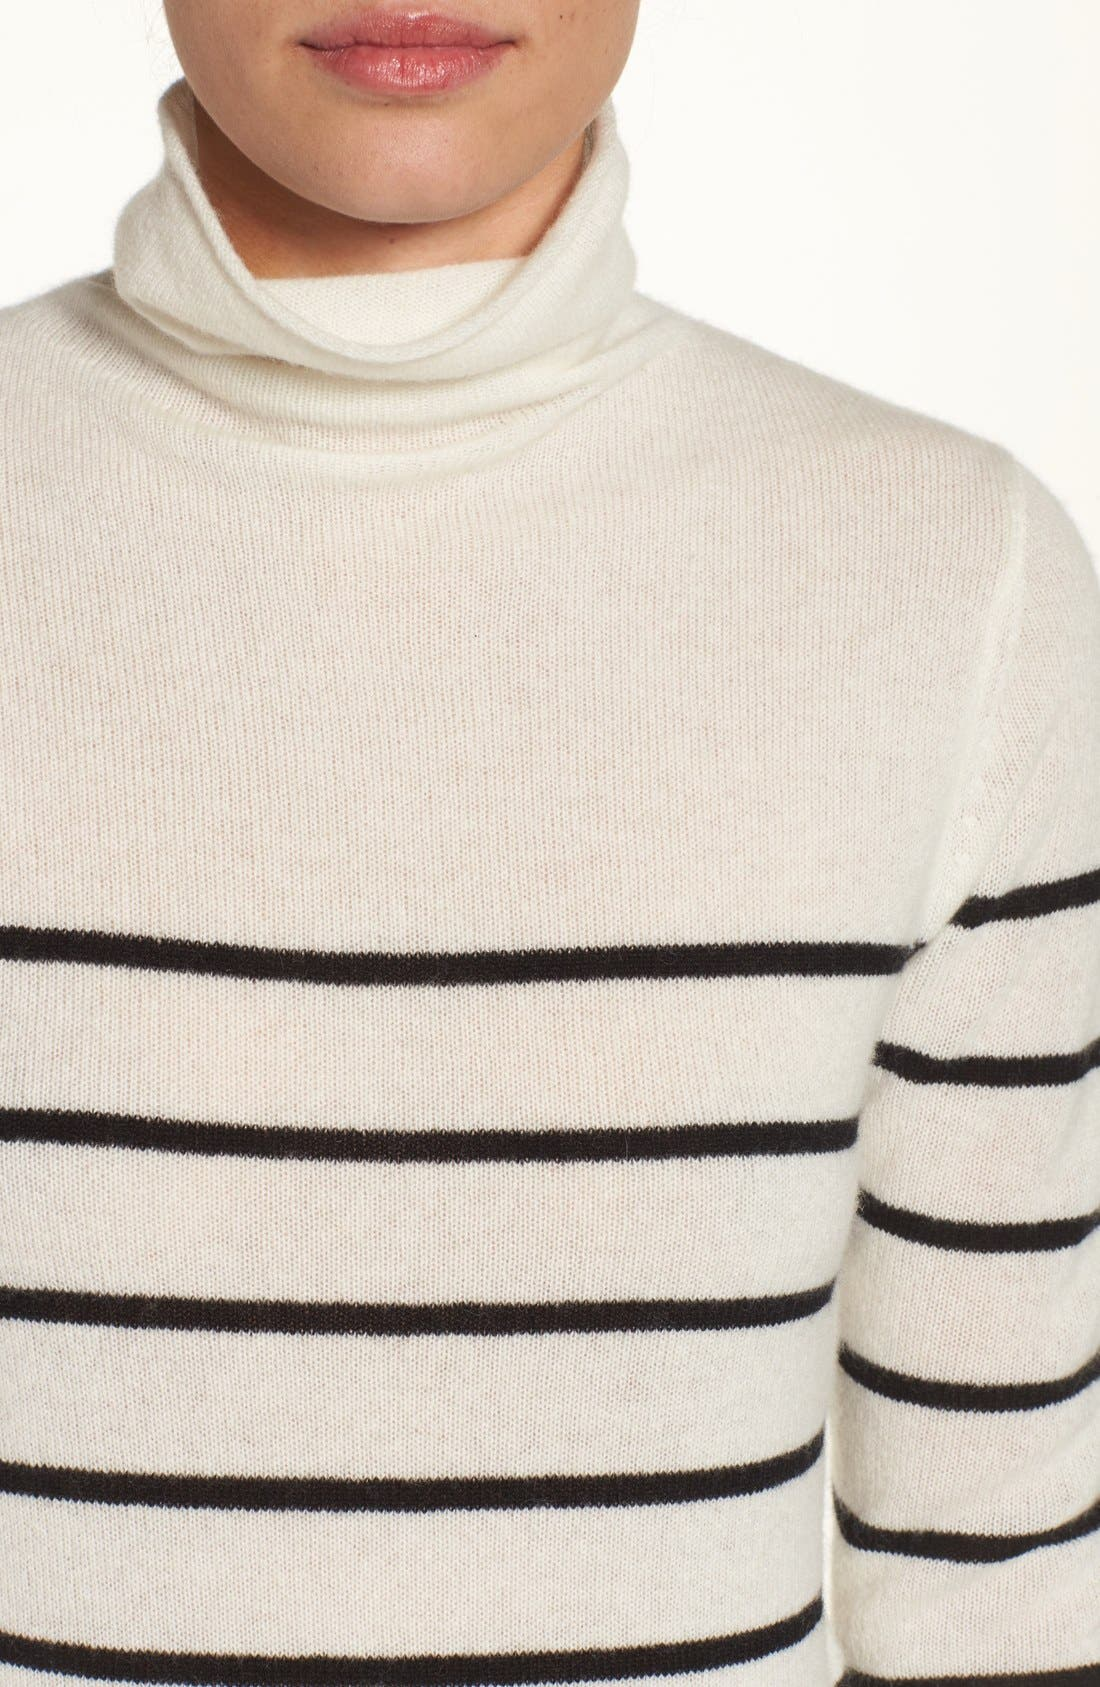 Wool & Cashmere Funnel Neck Sweater,                             Alternate thumbnail 4, color,                             Ivory- Black Stripe